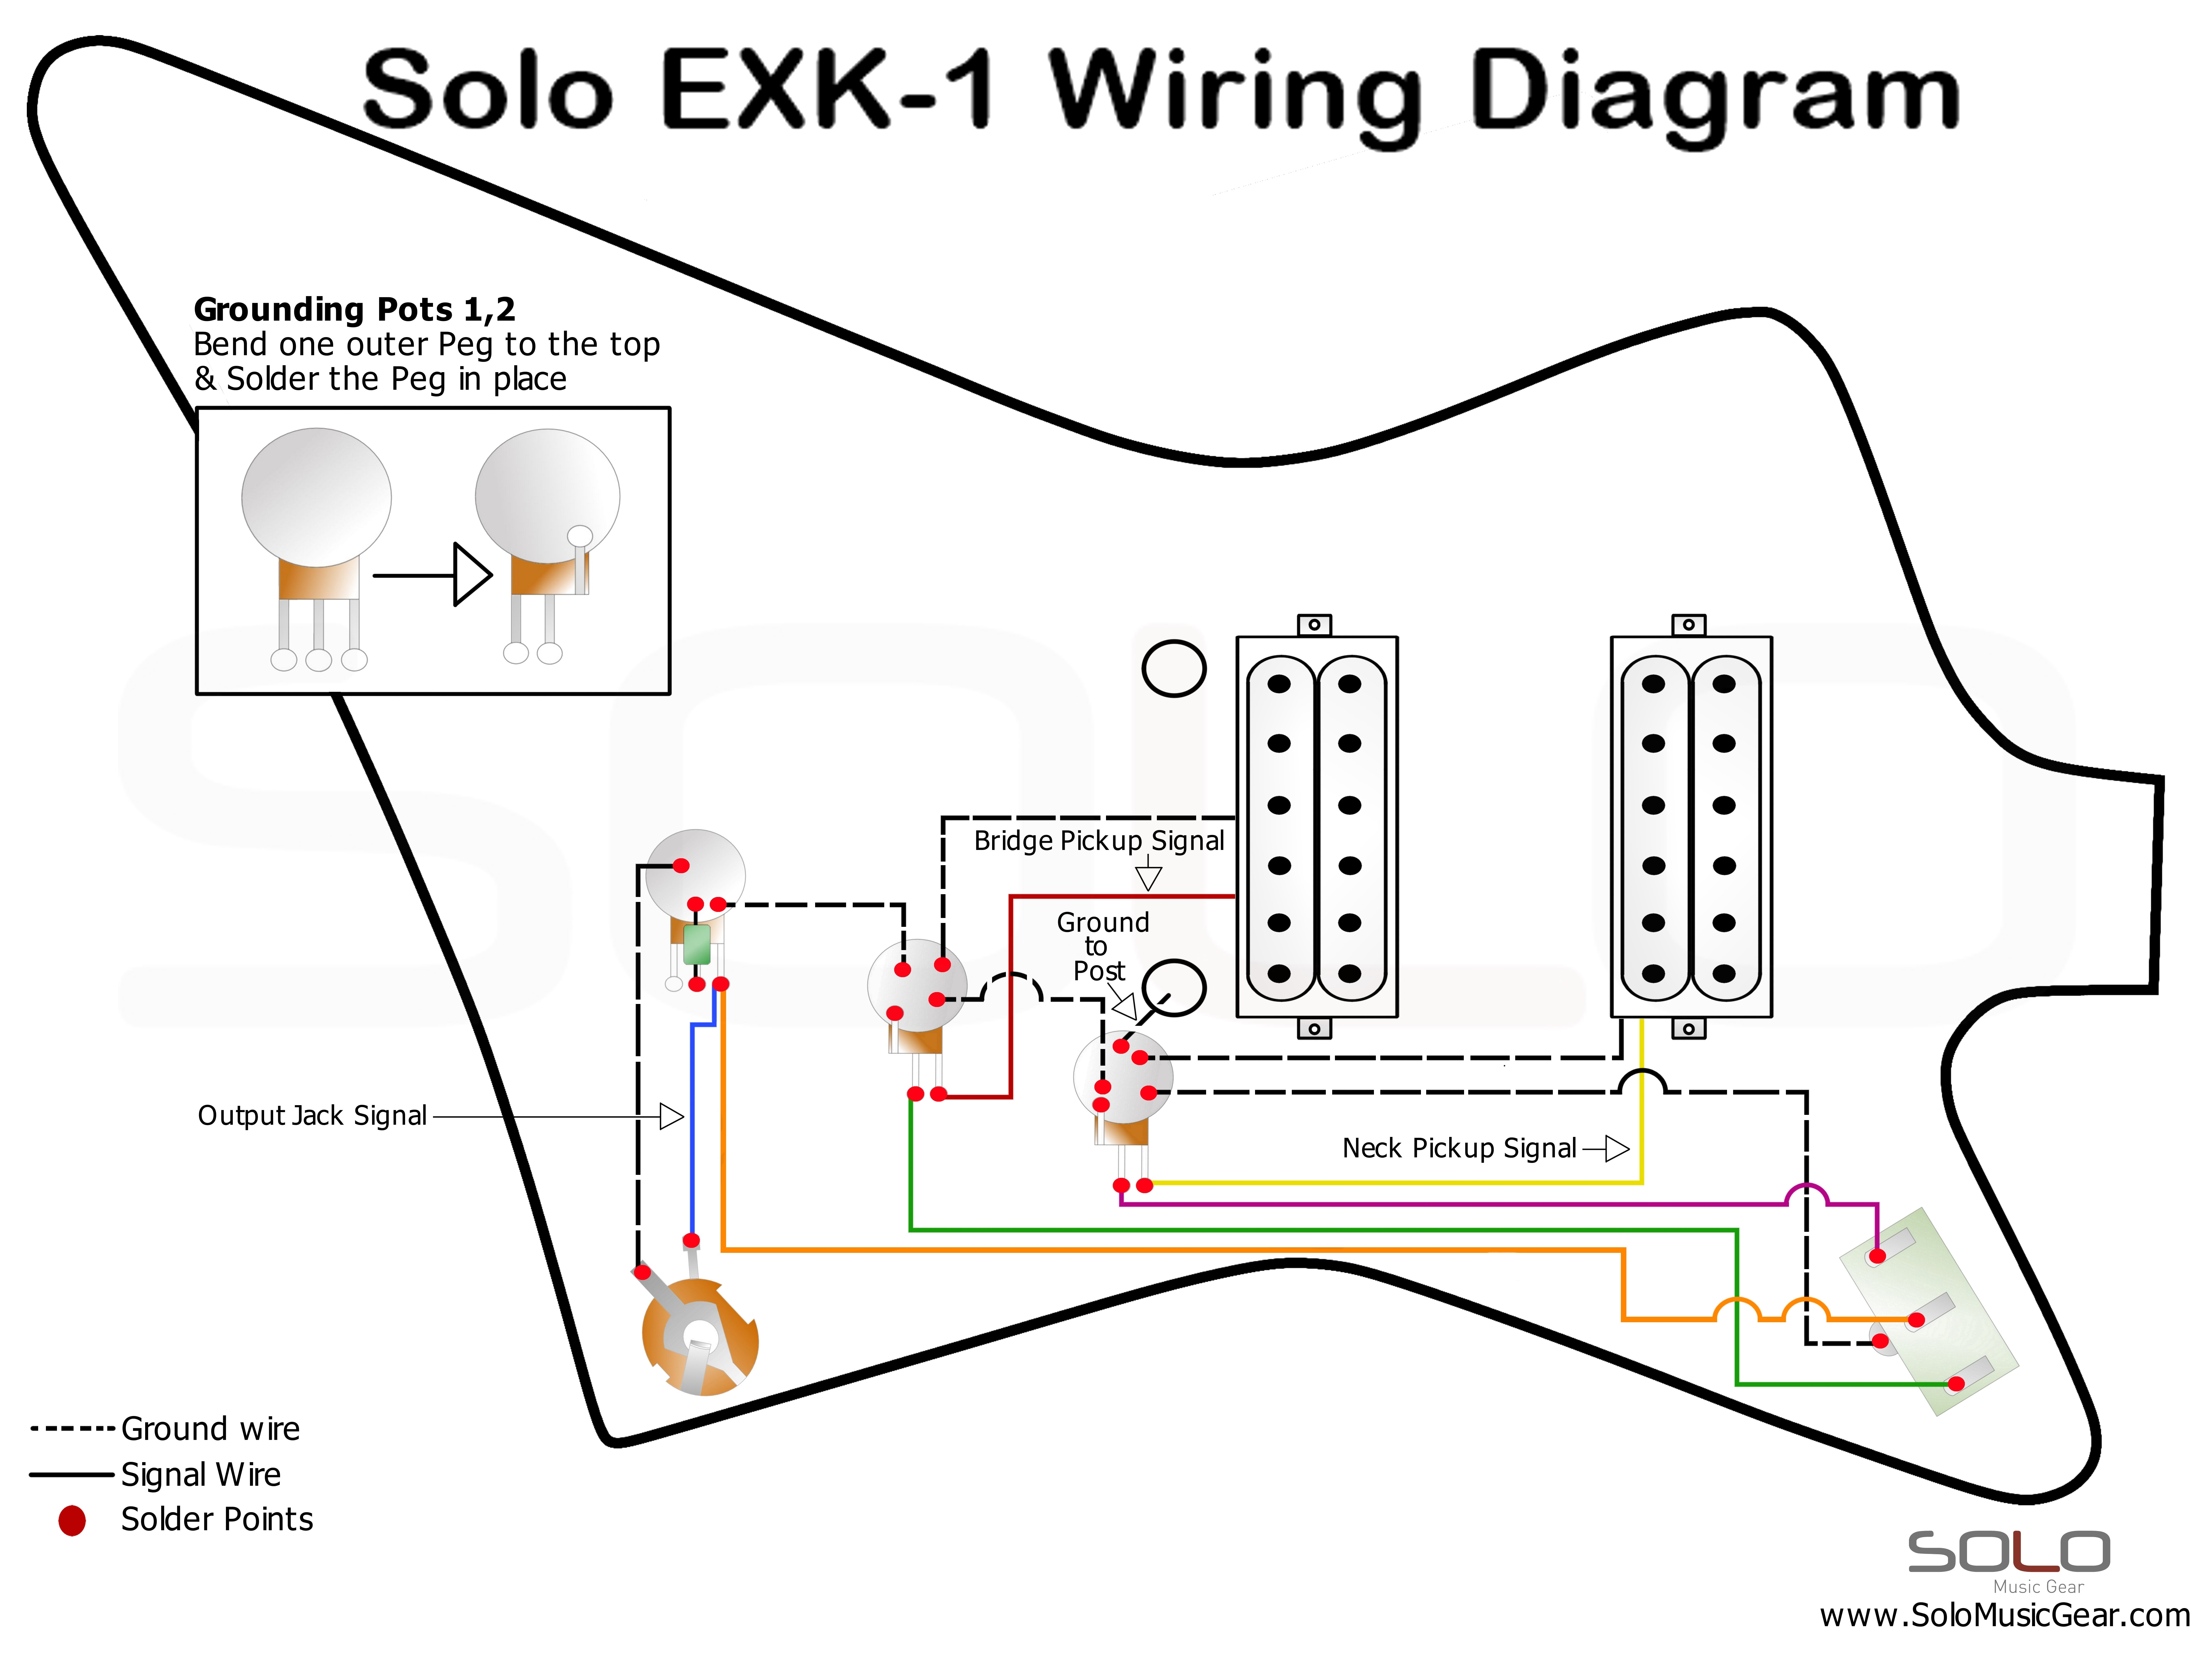 Wiring A Solo Trusted Schematics Diagram Ex Diagrams Exk 1 Music Gear 3 Way Switch Style